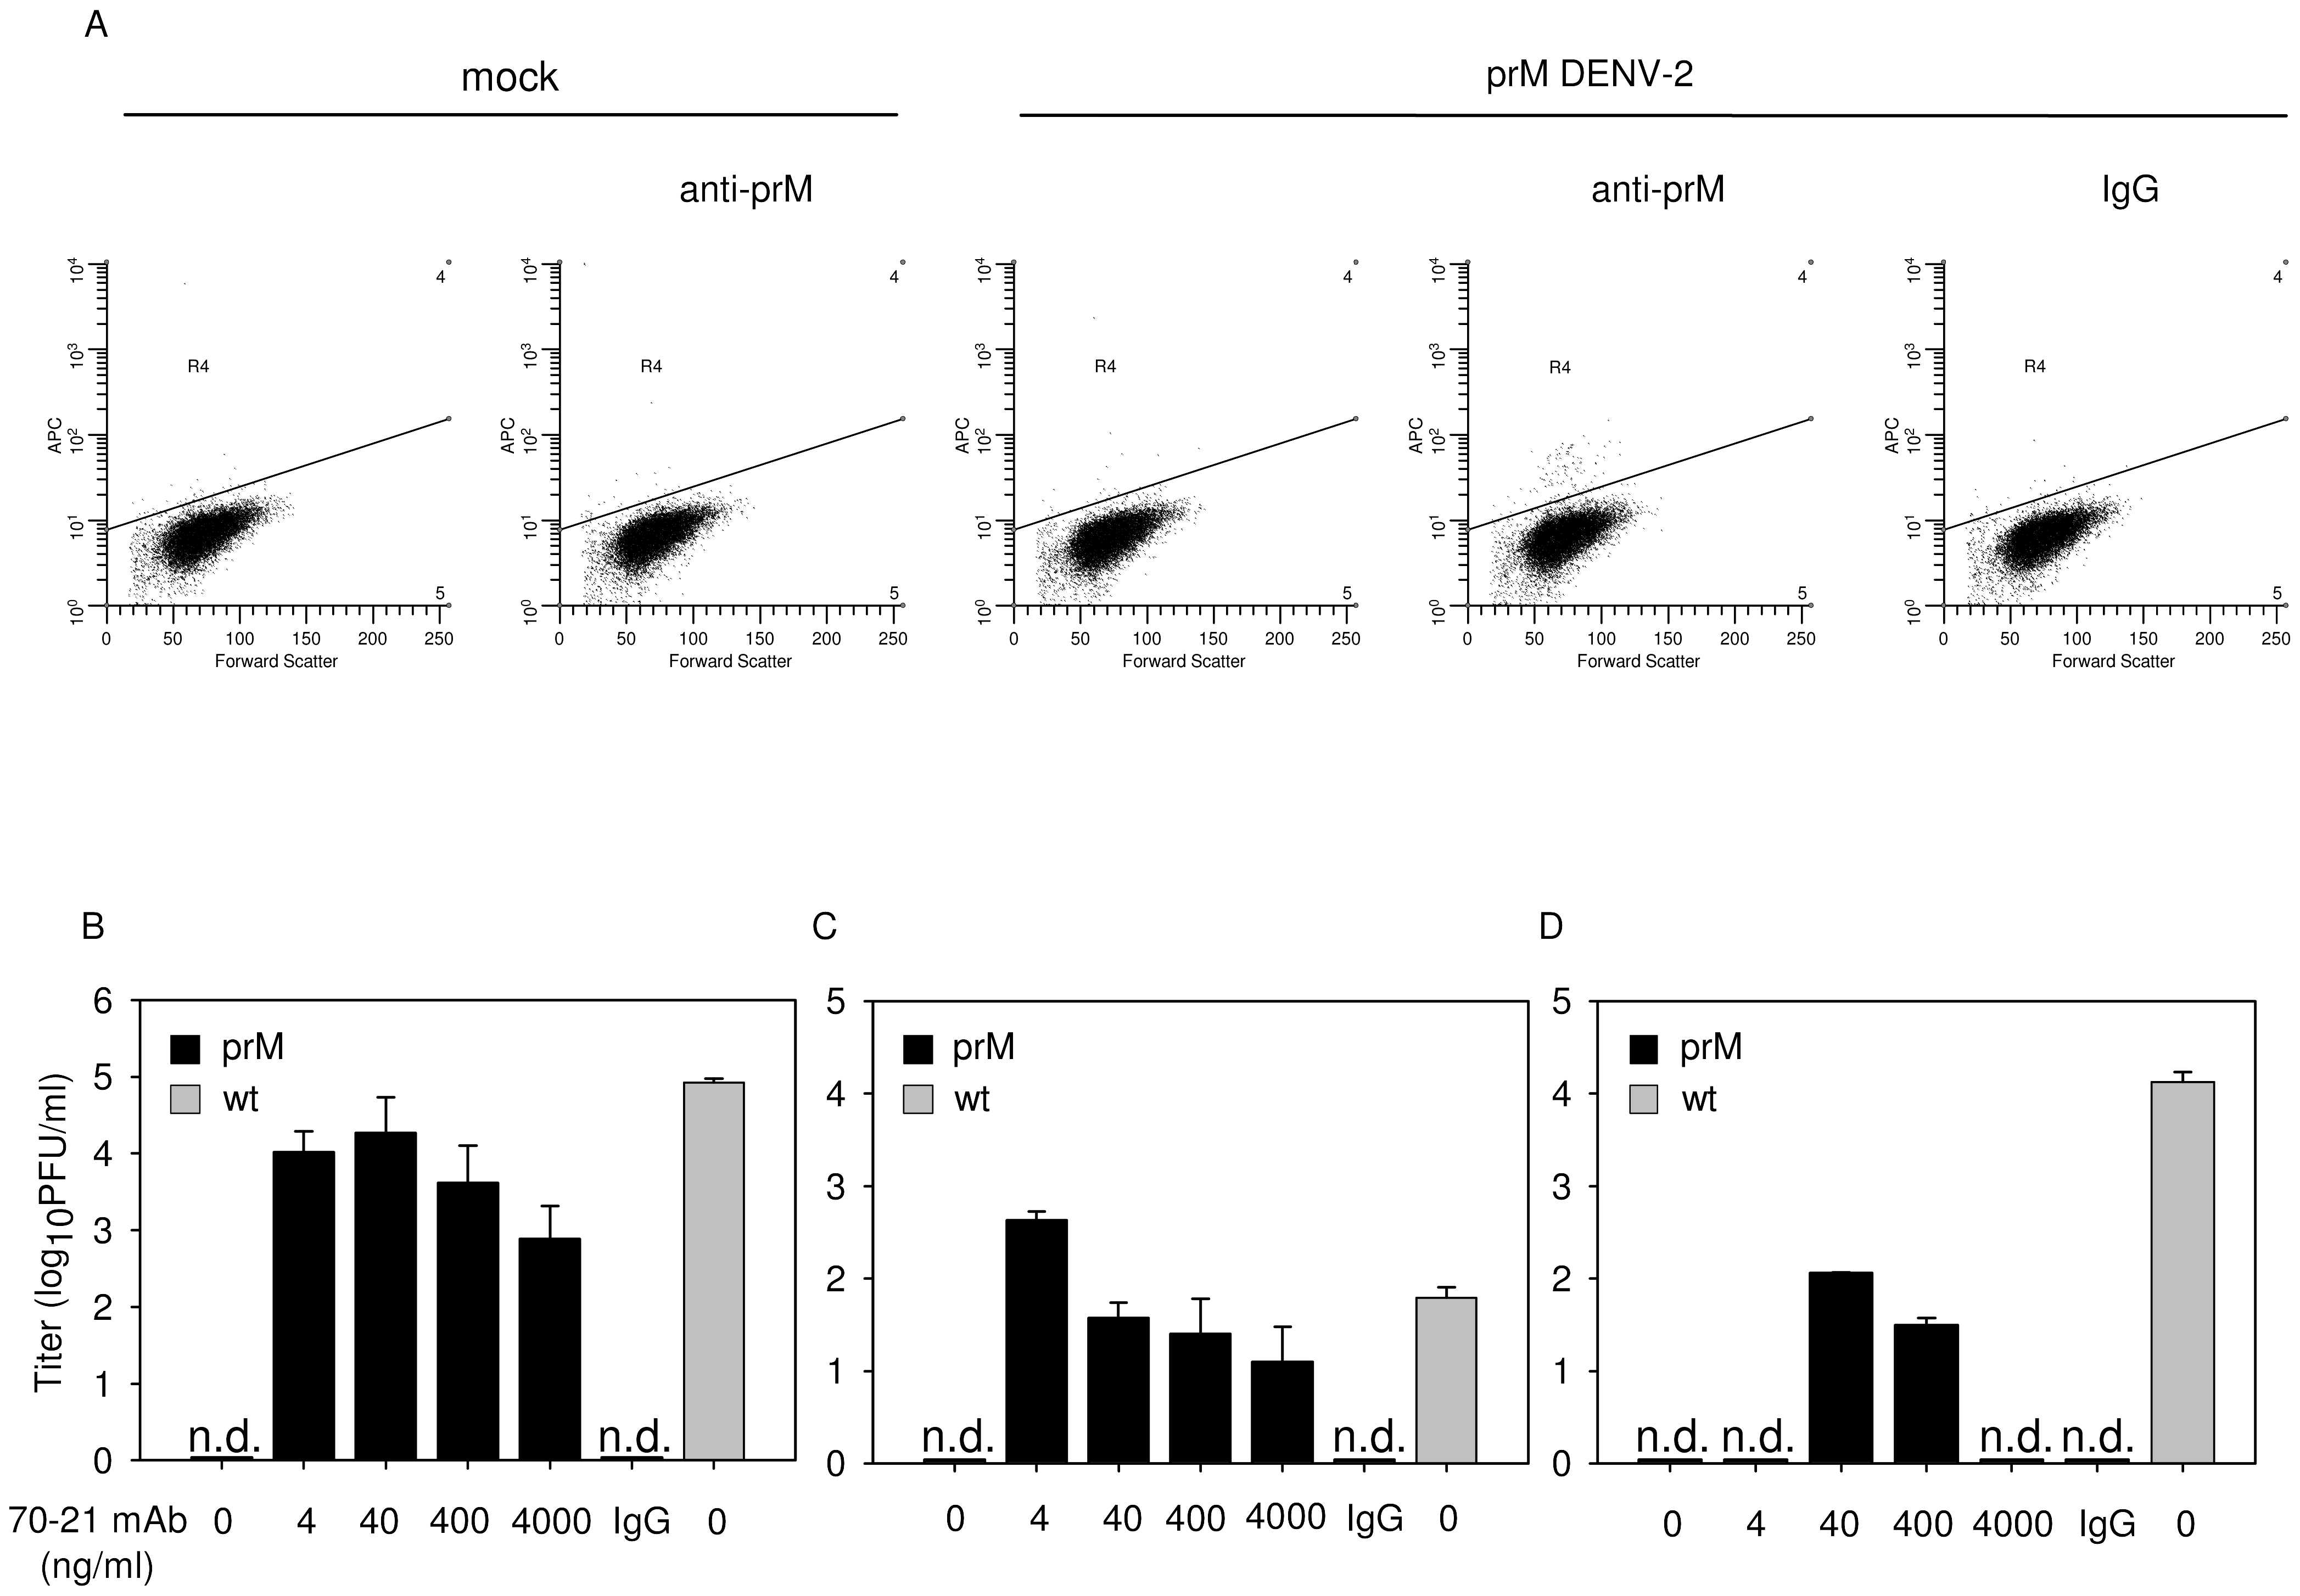 Immature DENV particles become highly infectious in the presence of anti-prM antibodies.